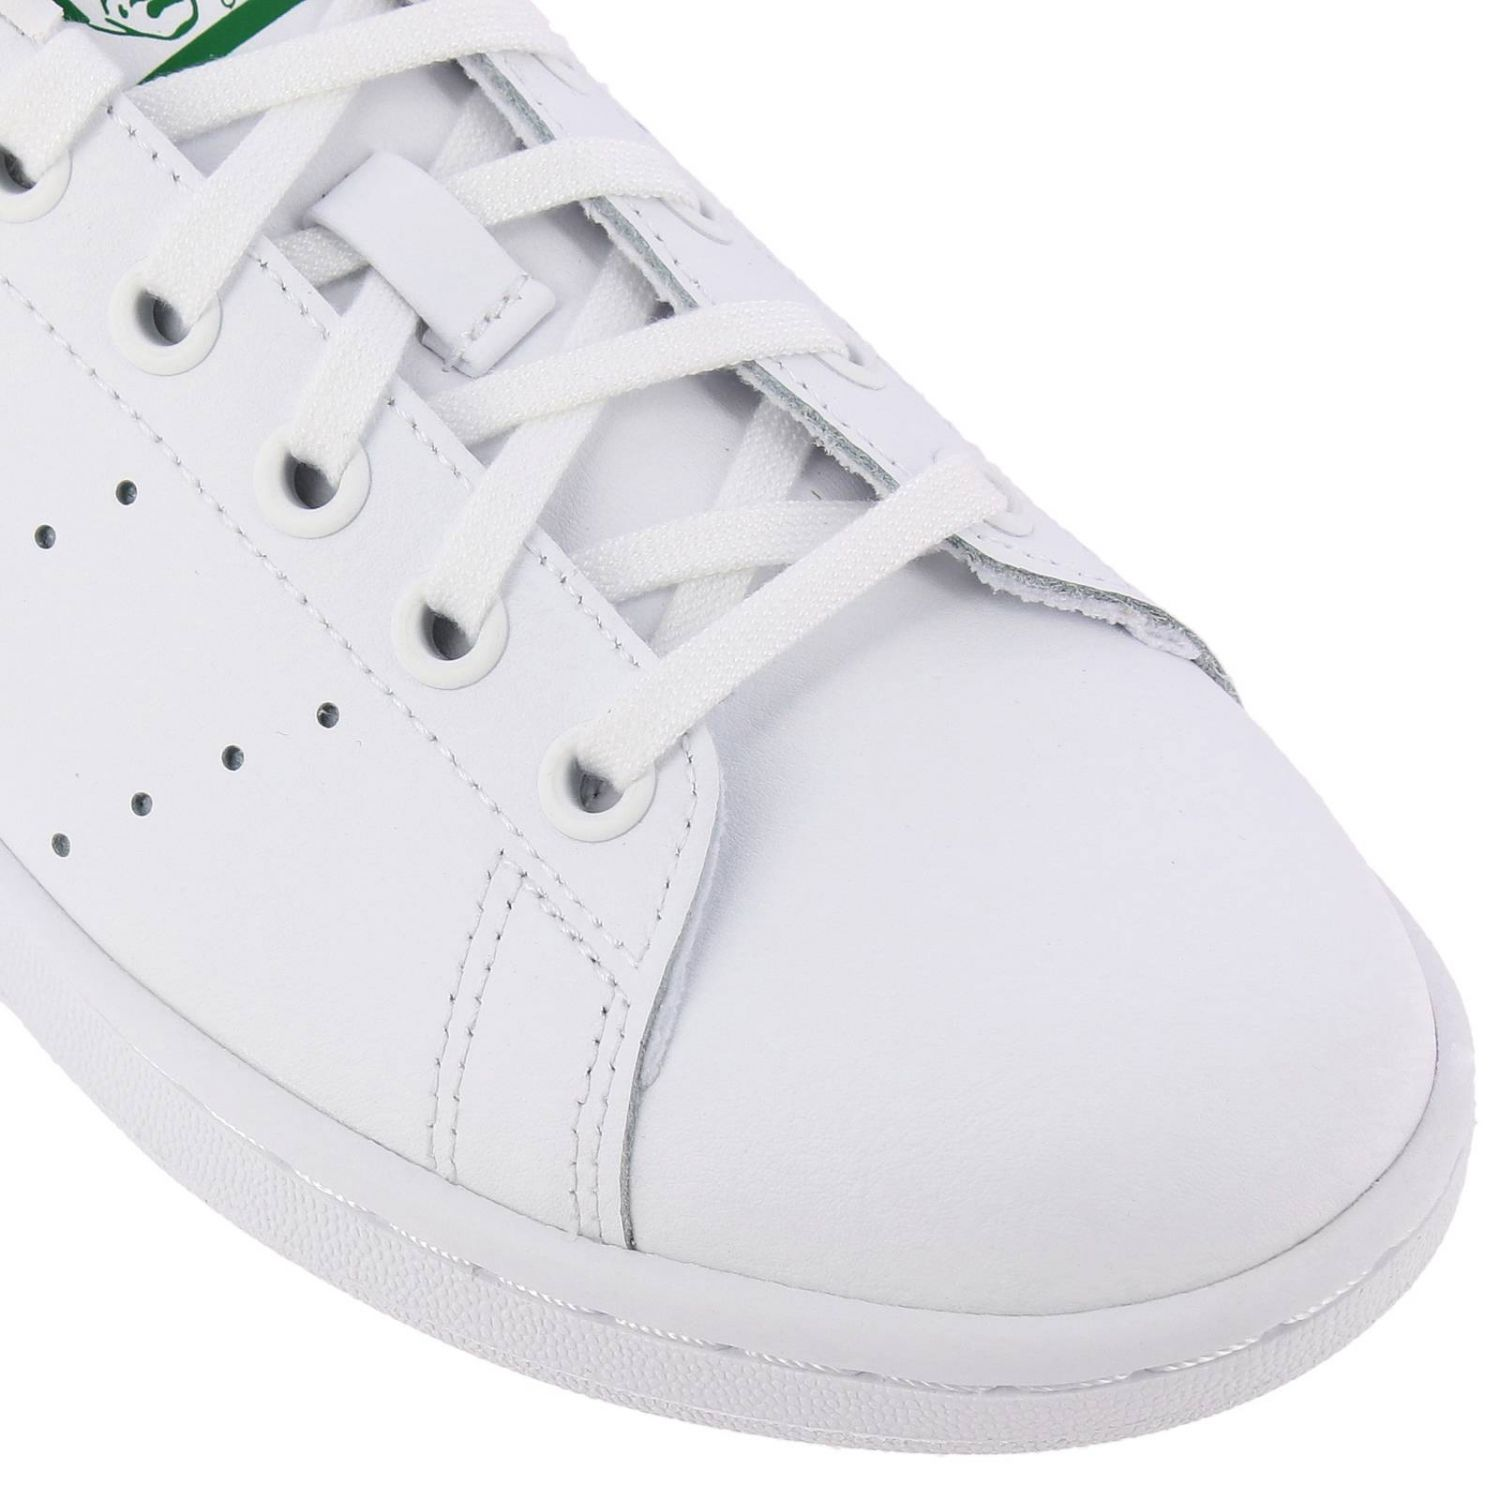 Shoes Adidas Originals: Stan Smith J Adidas Originals Sneakers in smooth leather white 3